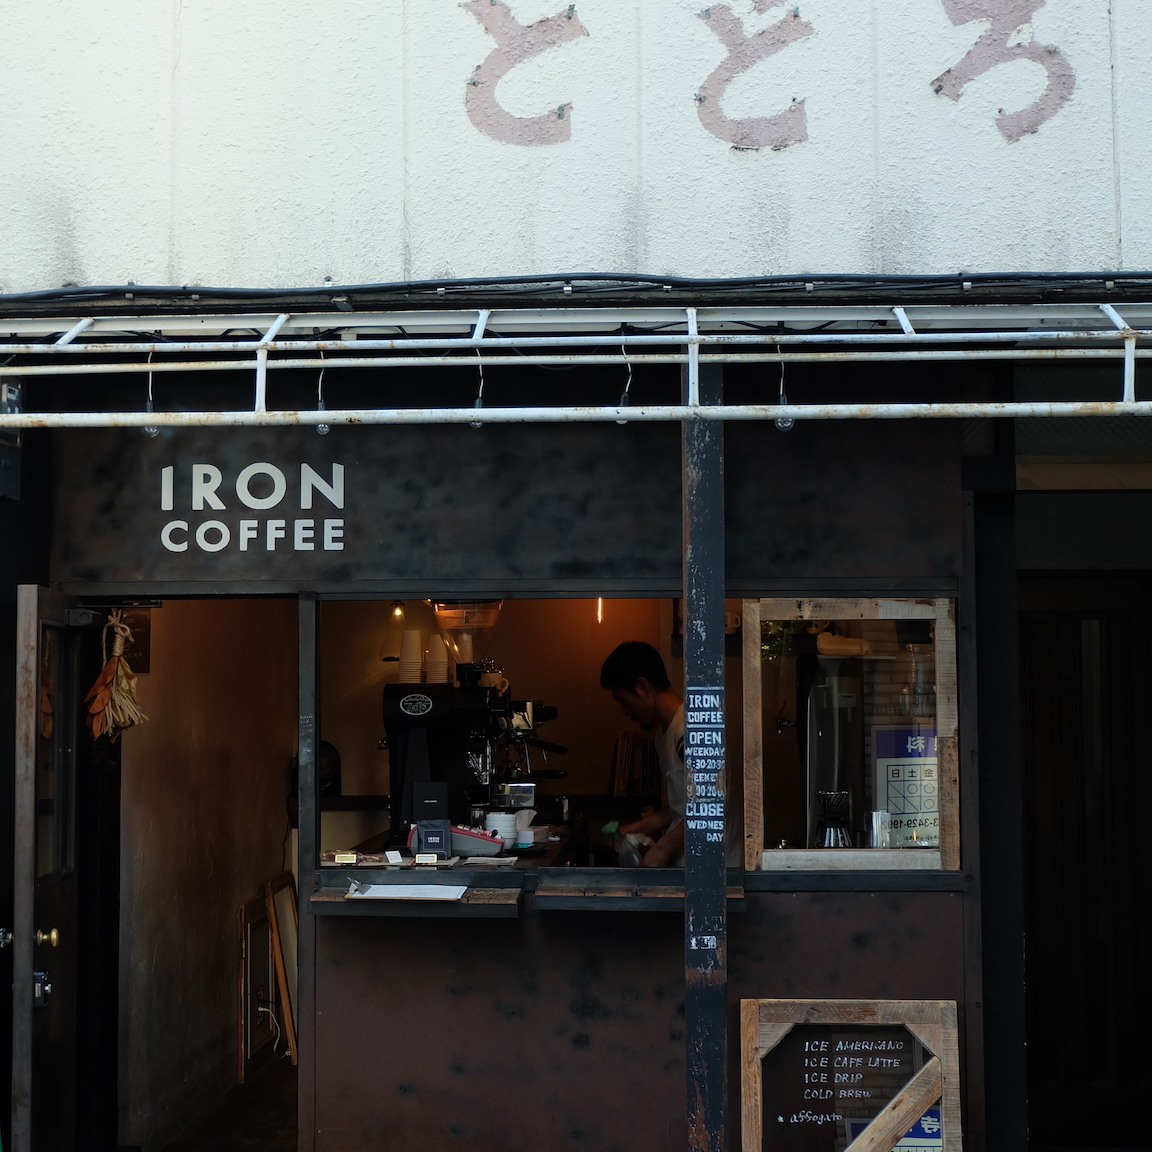 Old Building with faded writing housing Iron Coffee at Gotokuji Tokyo Japan